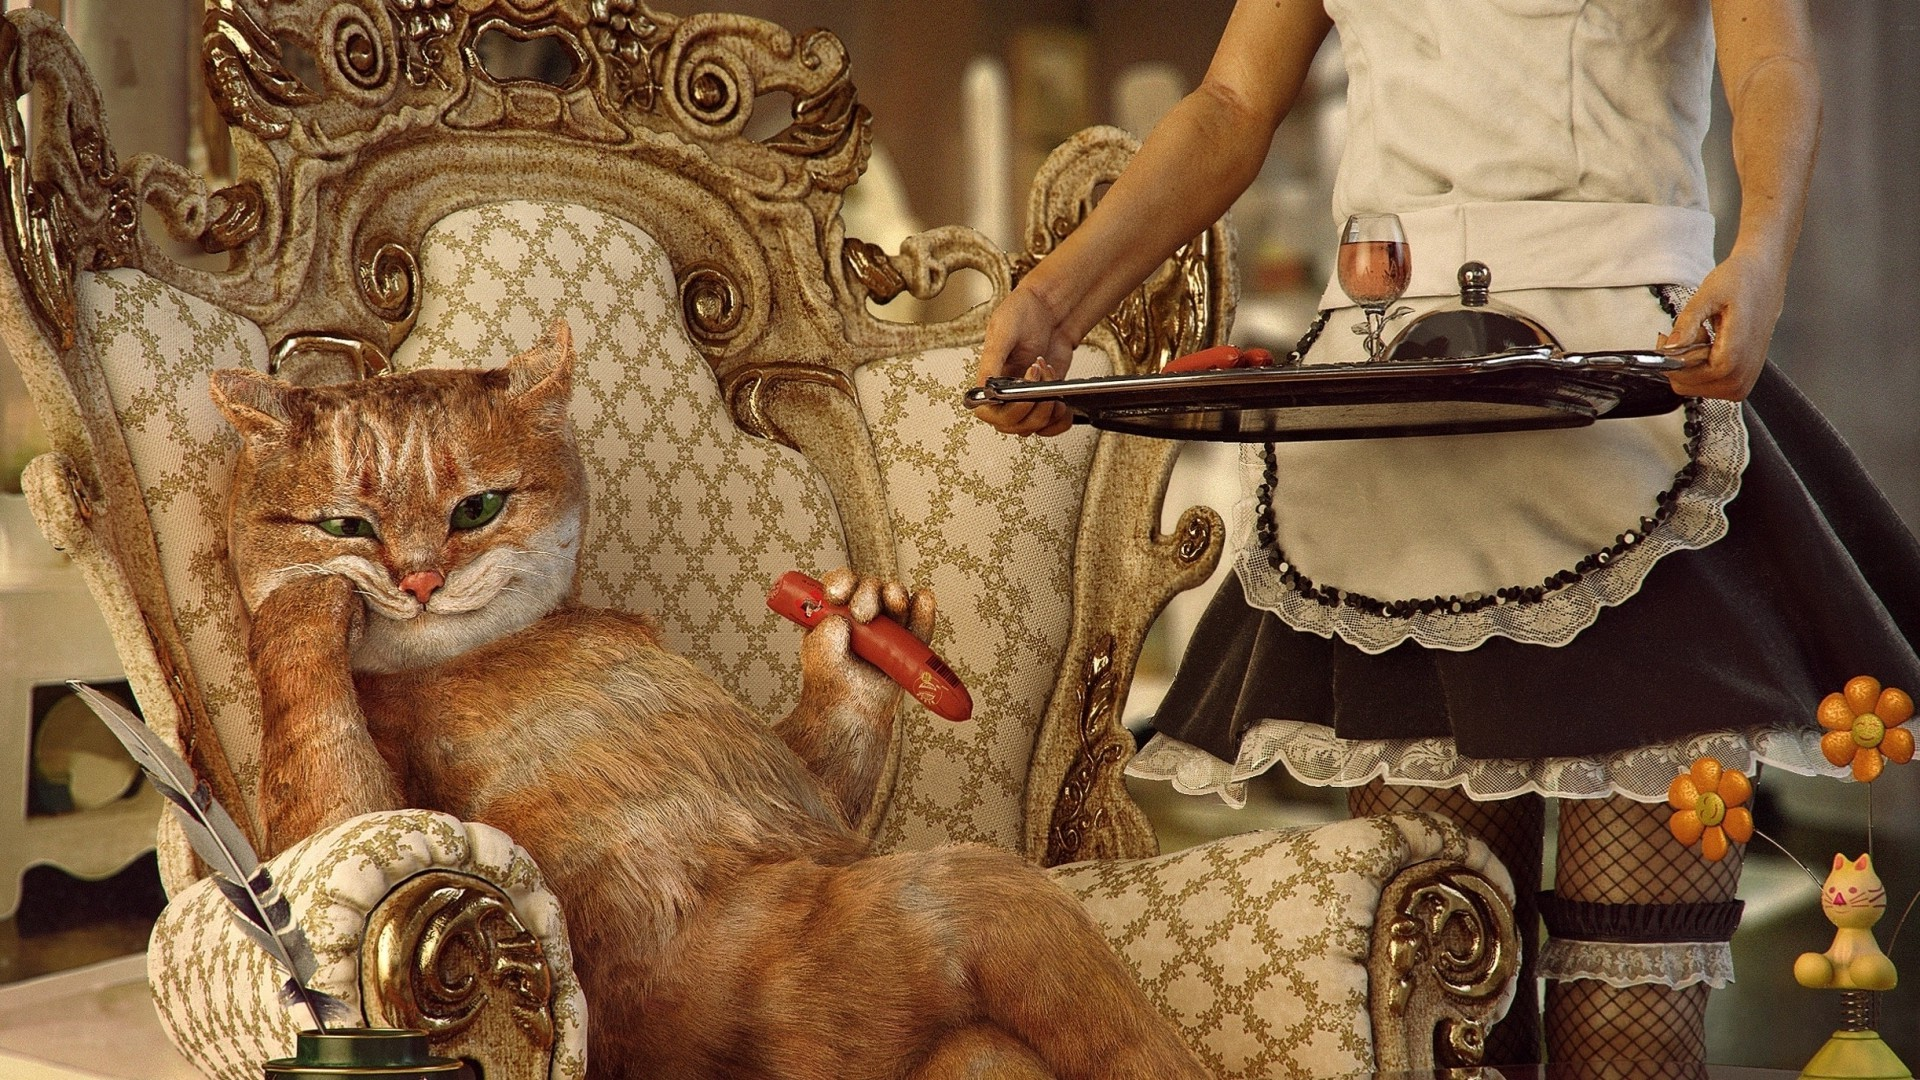 Crazy Girl Wallpaper Download Women Animals Digital Art Cat Wealth Maid Skirt